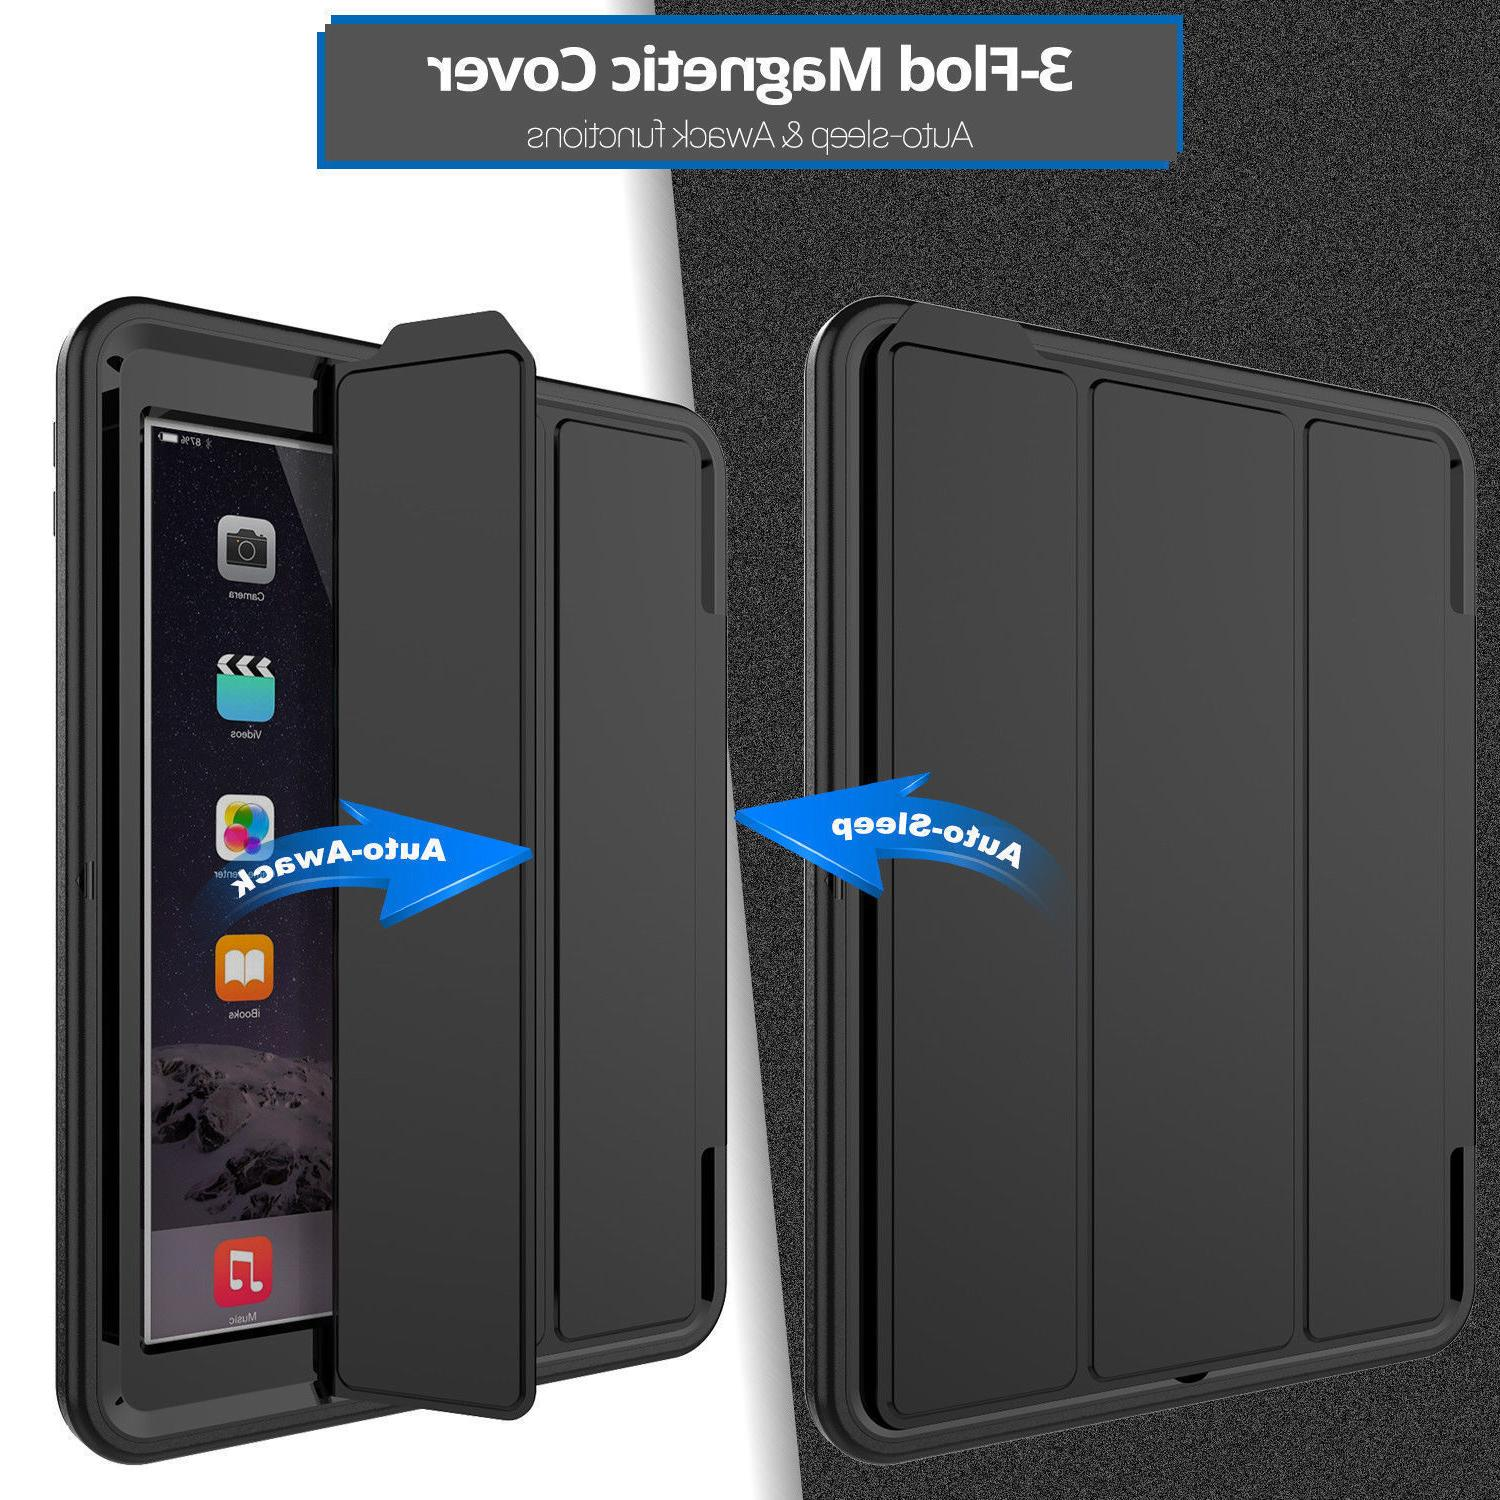 Heavy in 1 Shock Proof PC Case iPad 9.7 inch 2018